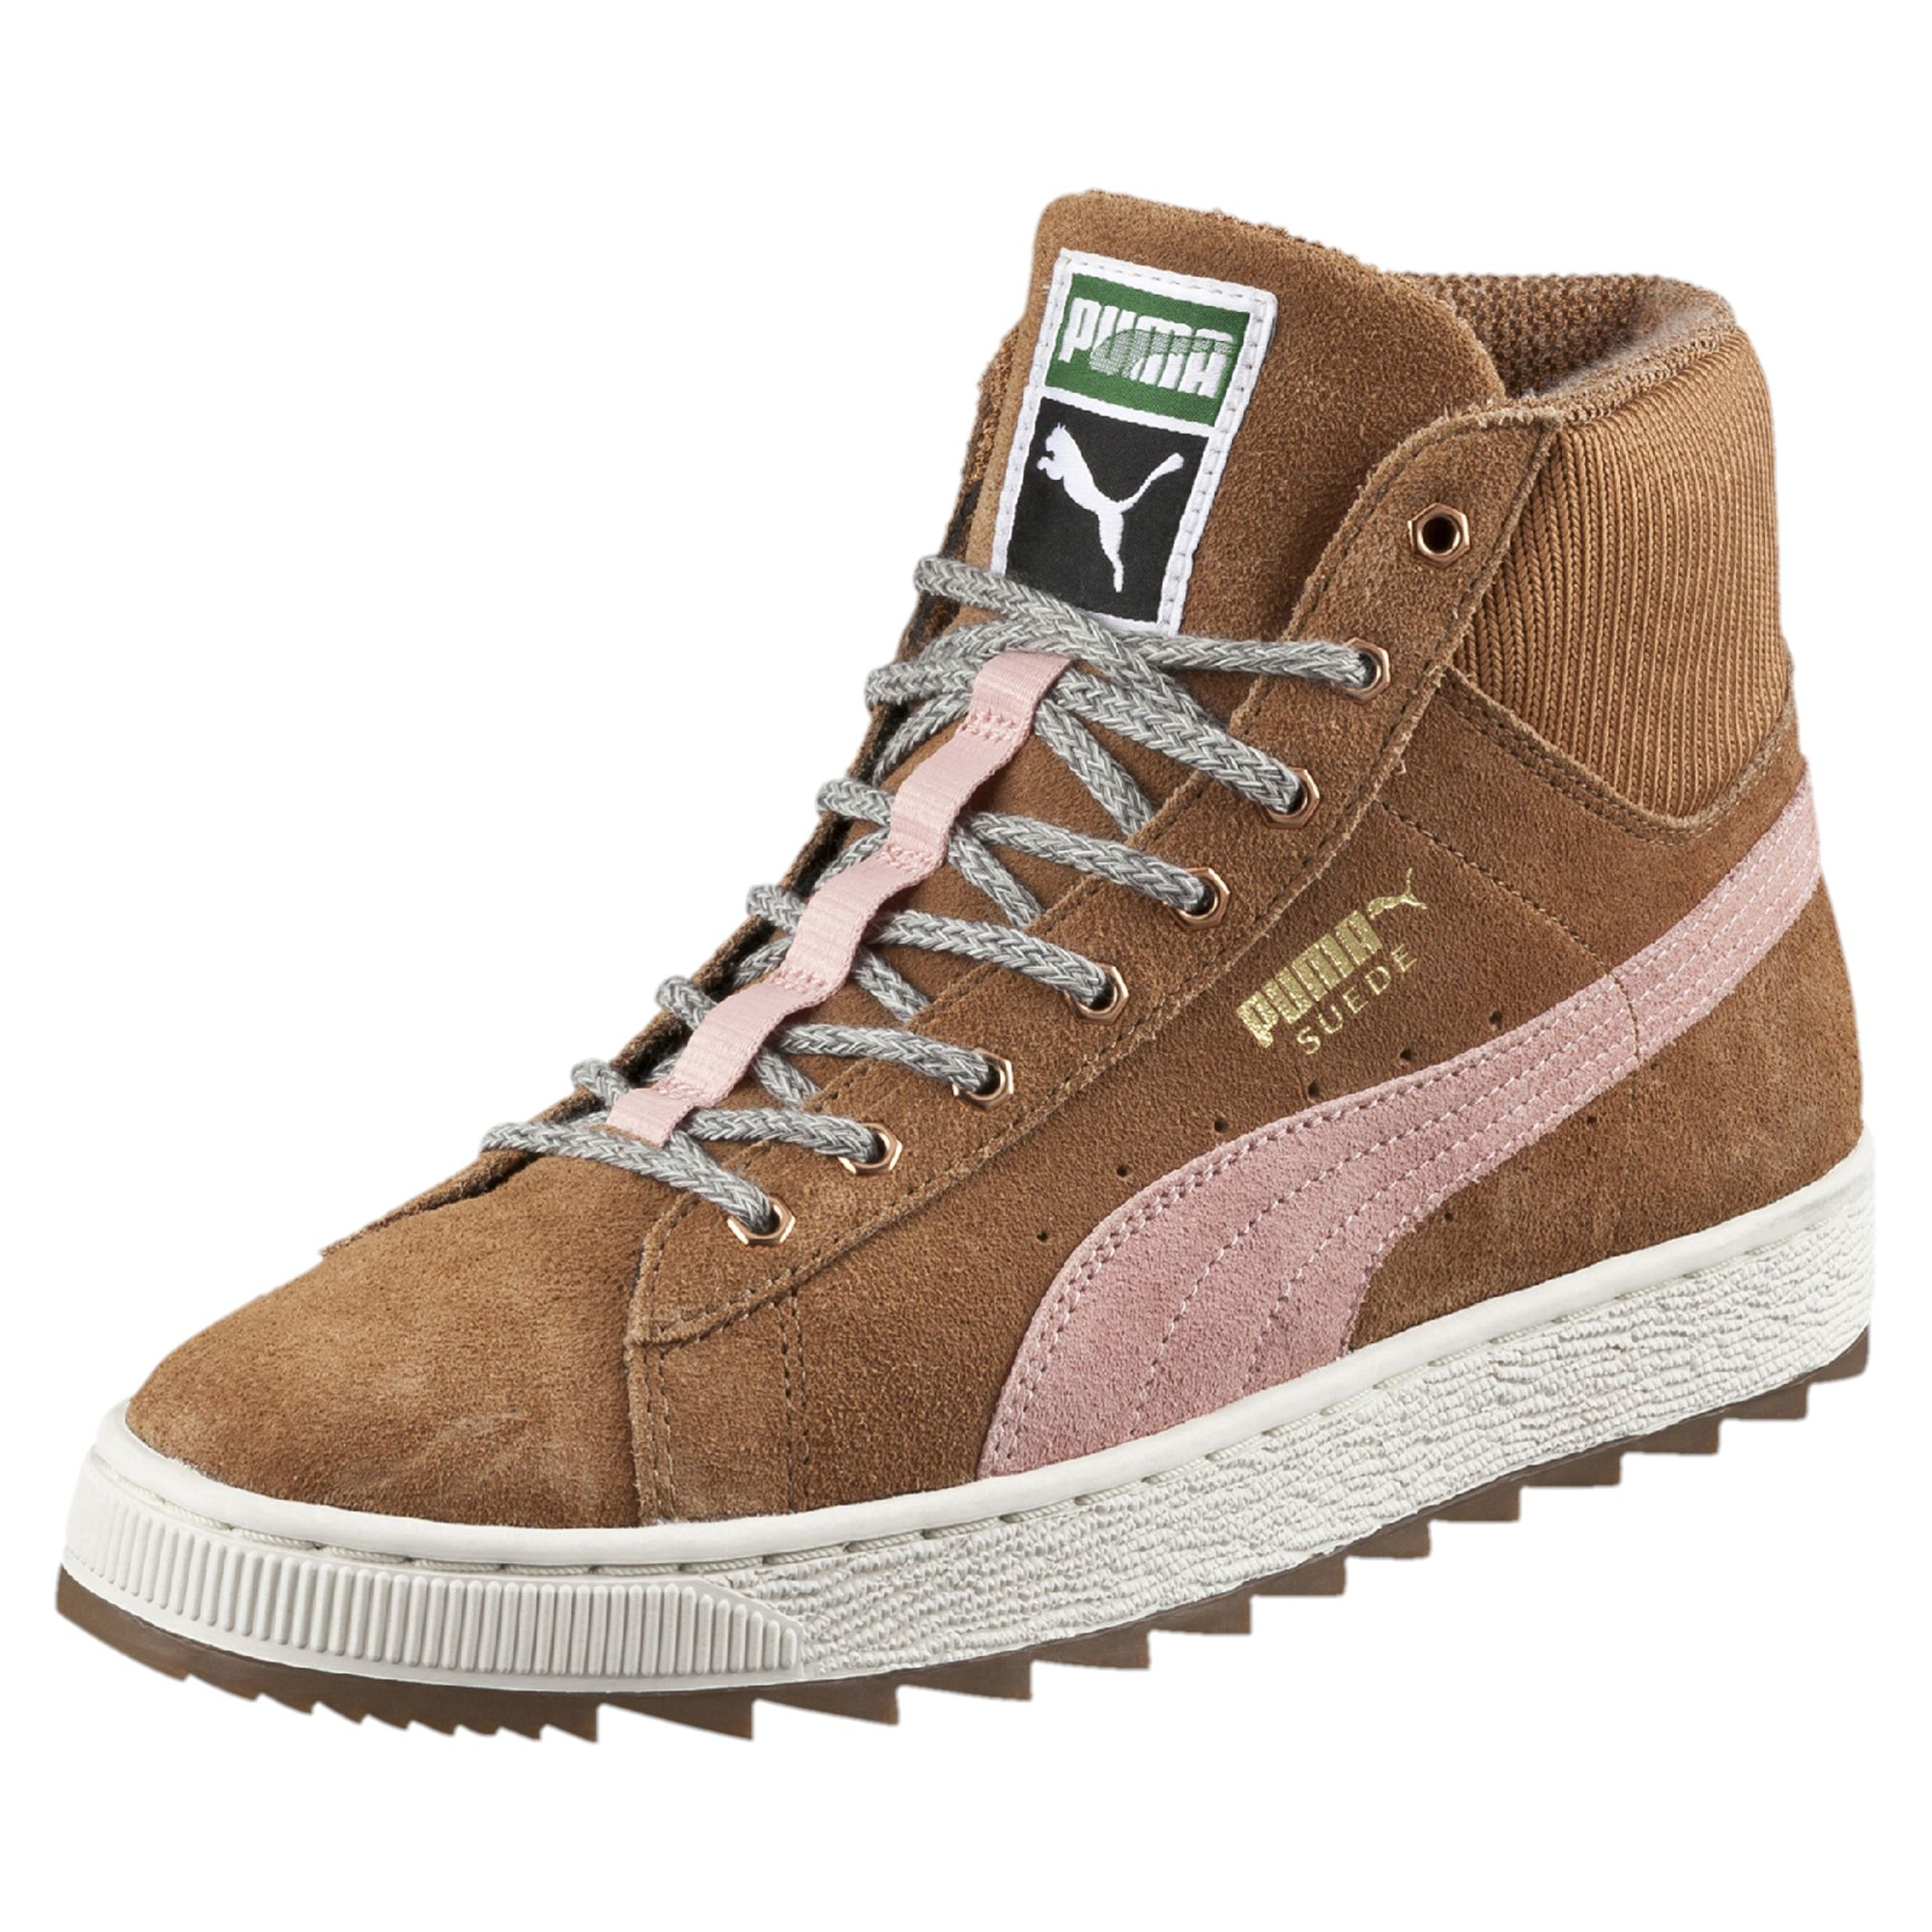 5235243376e220 Lyst - PUMA Suede Winterized Rugged Mid Women s Sneakers in Brown